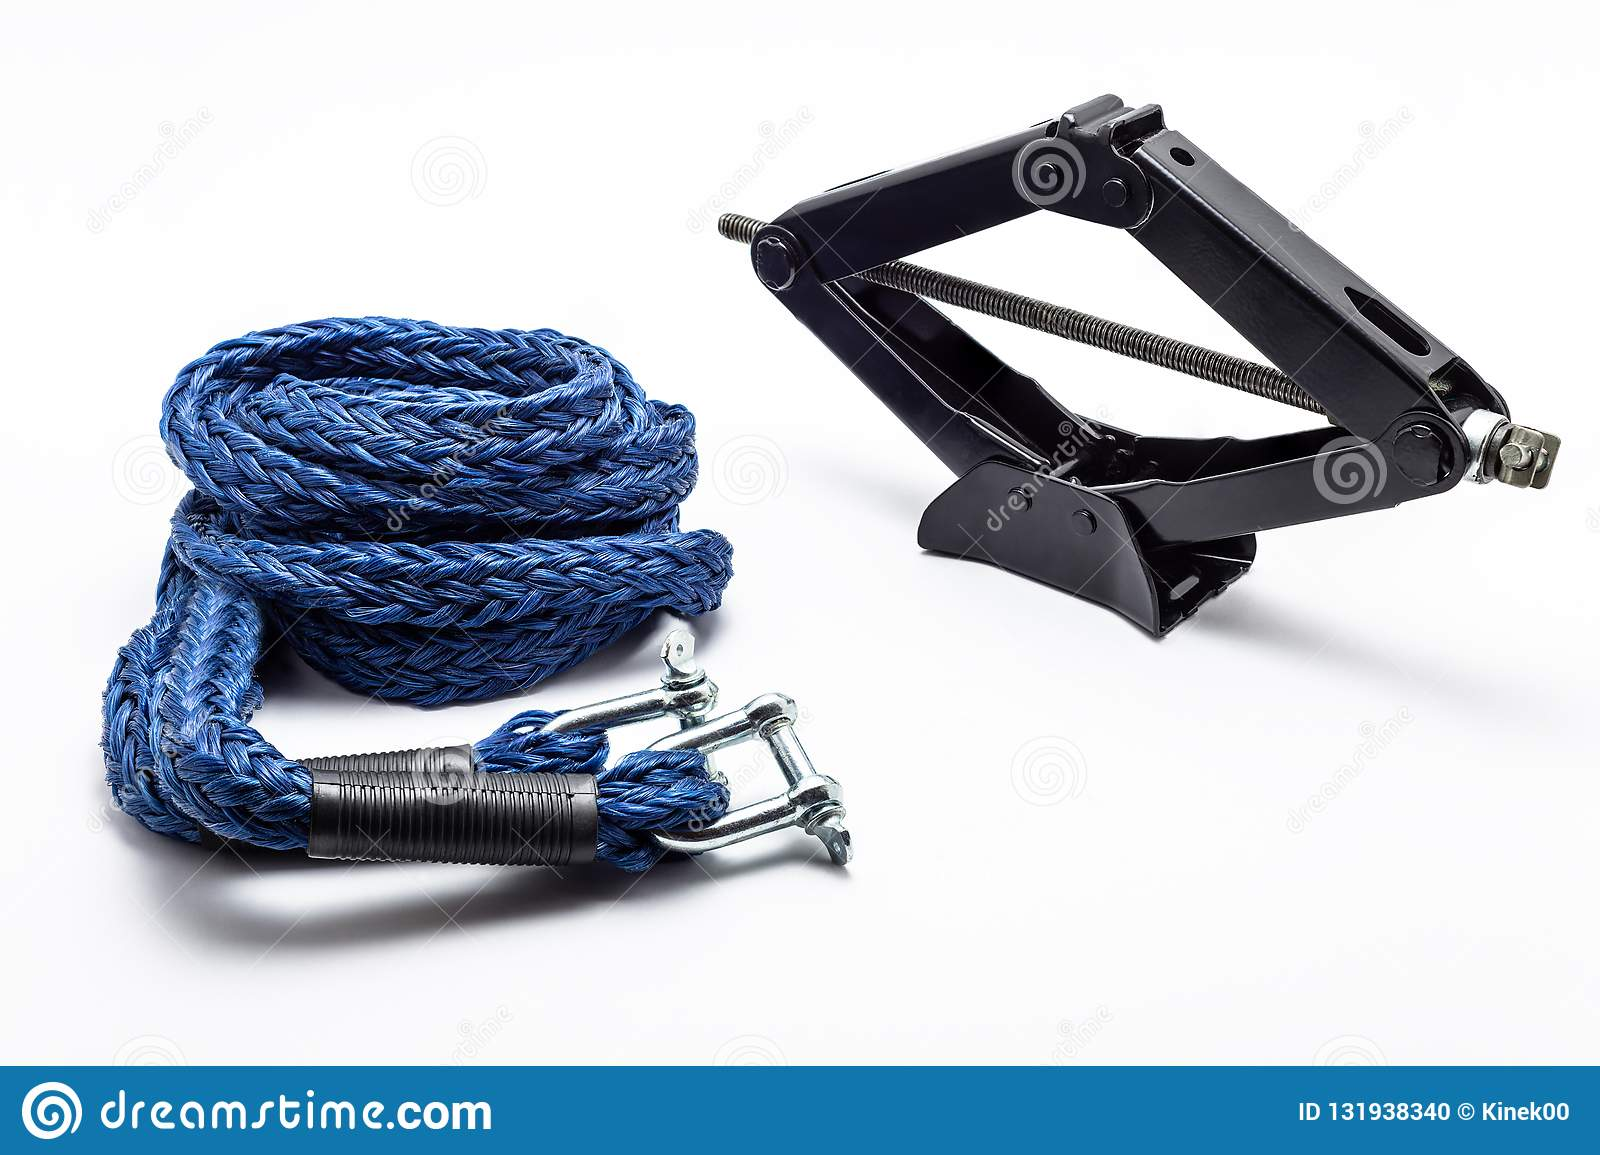 Manual scissor car jack and car tow rope, isolated on a white background with a clipping path.